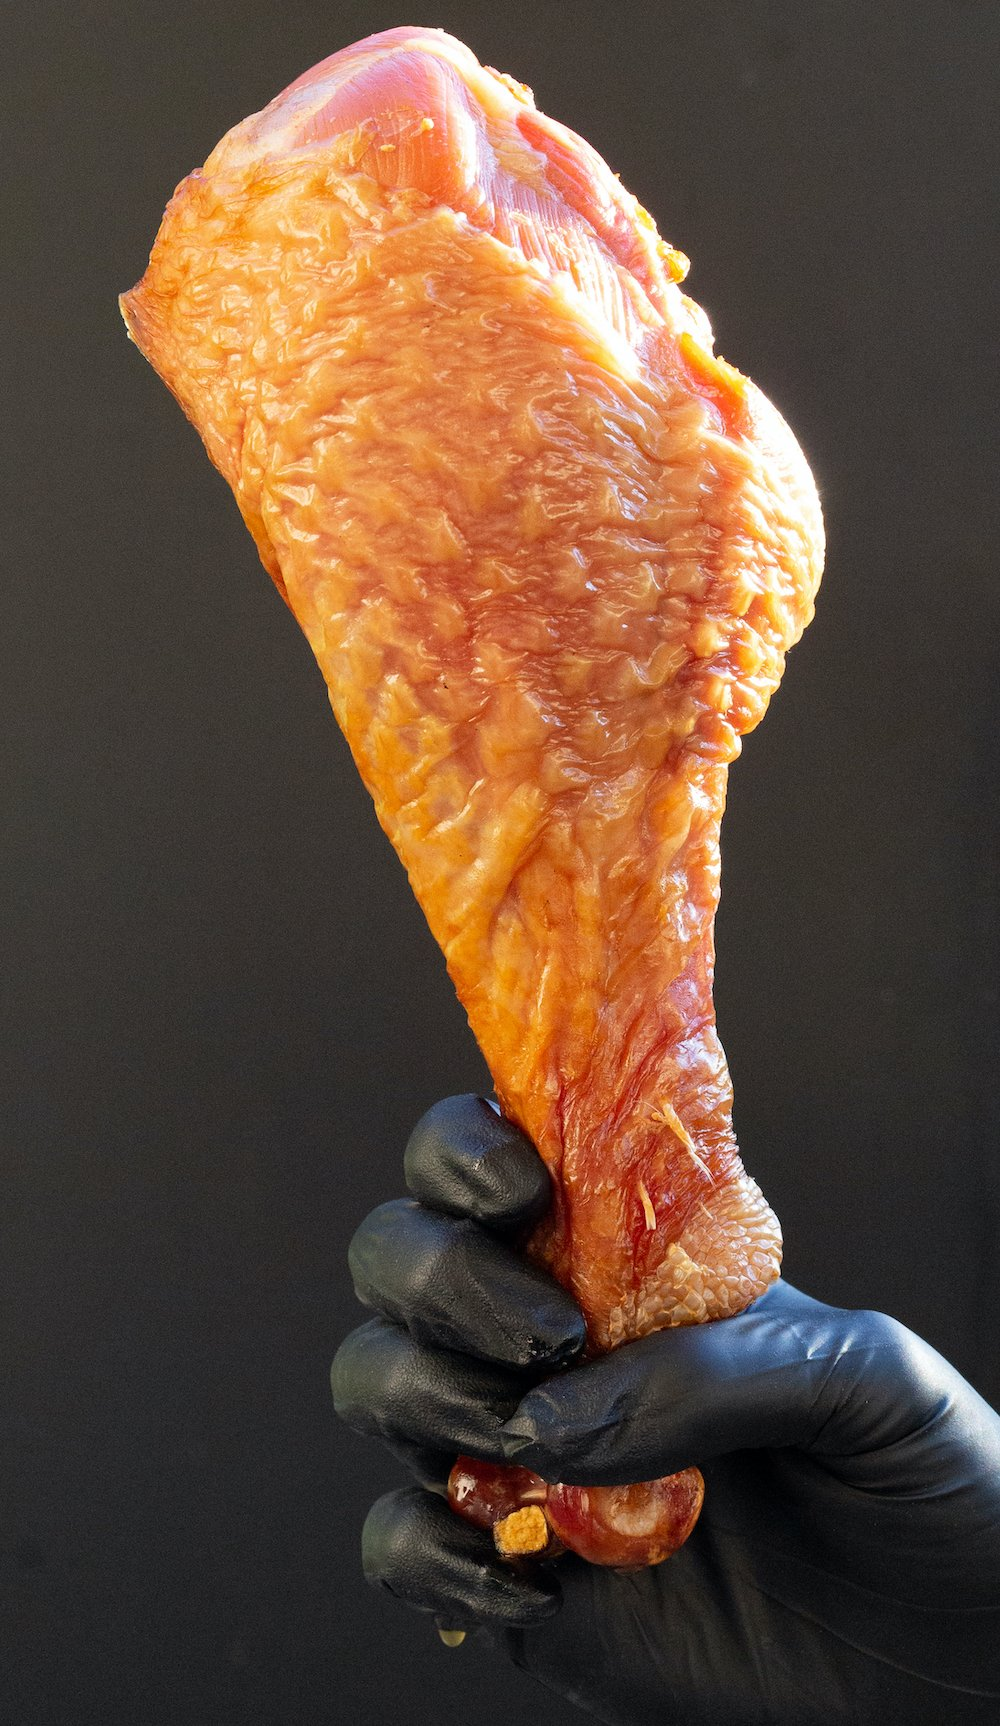 Copycat Disney Turkey Leg Recipe